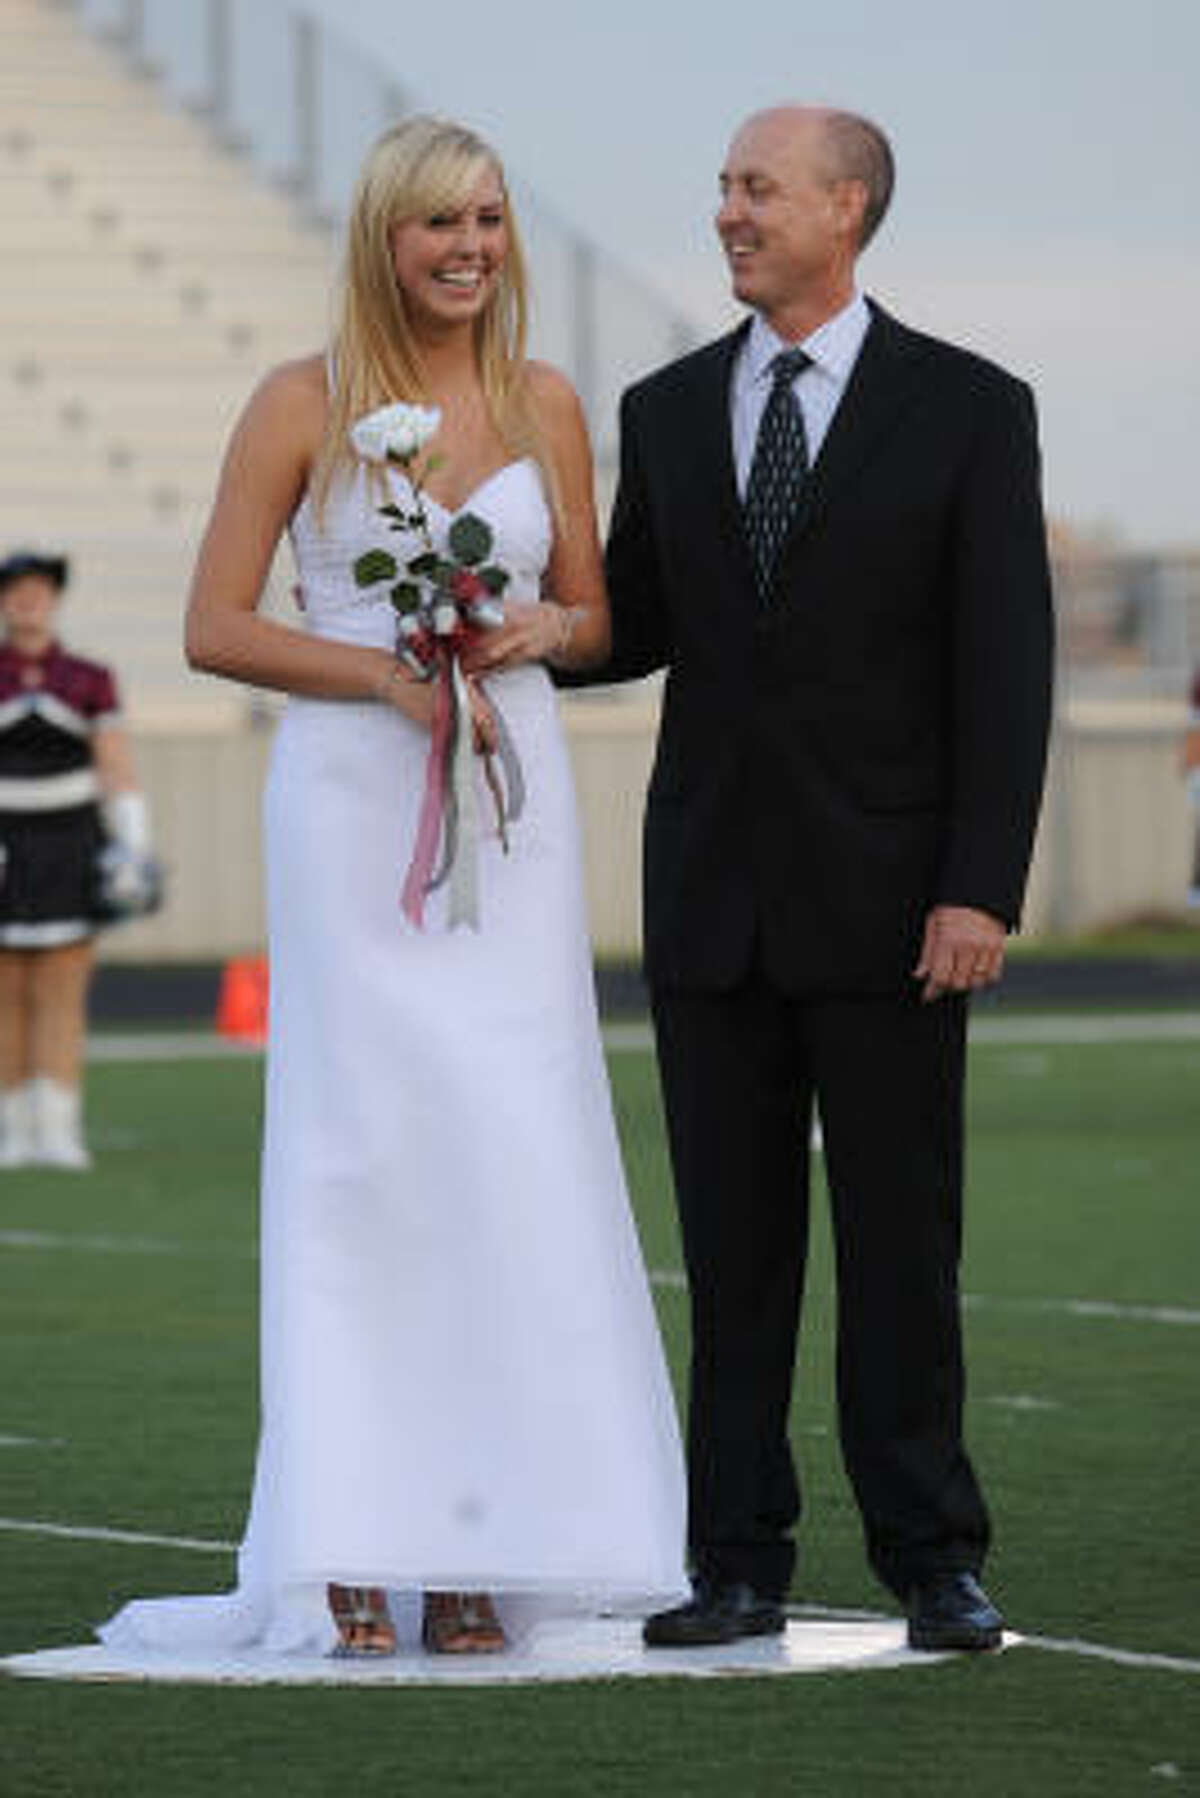 Katelyn Knight and her dad, John Knight, react to Katelyn being named Pearland's Homecoming Queen during a pre-game ceremony at The Rig stadium.